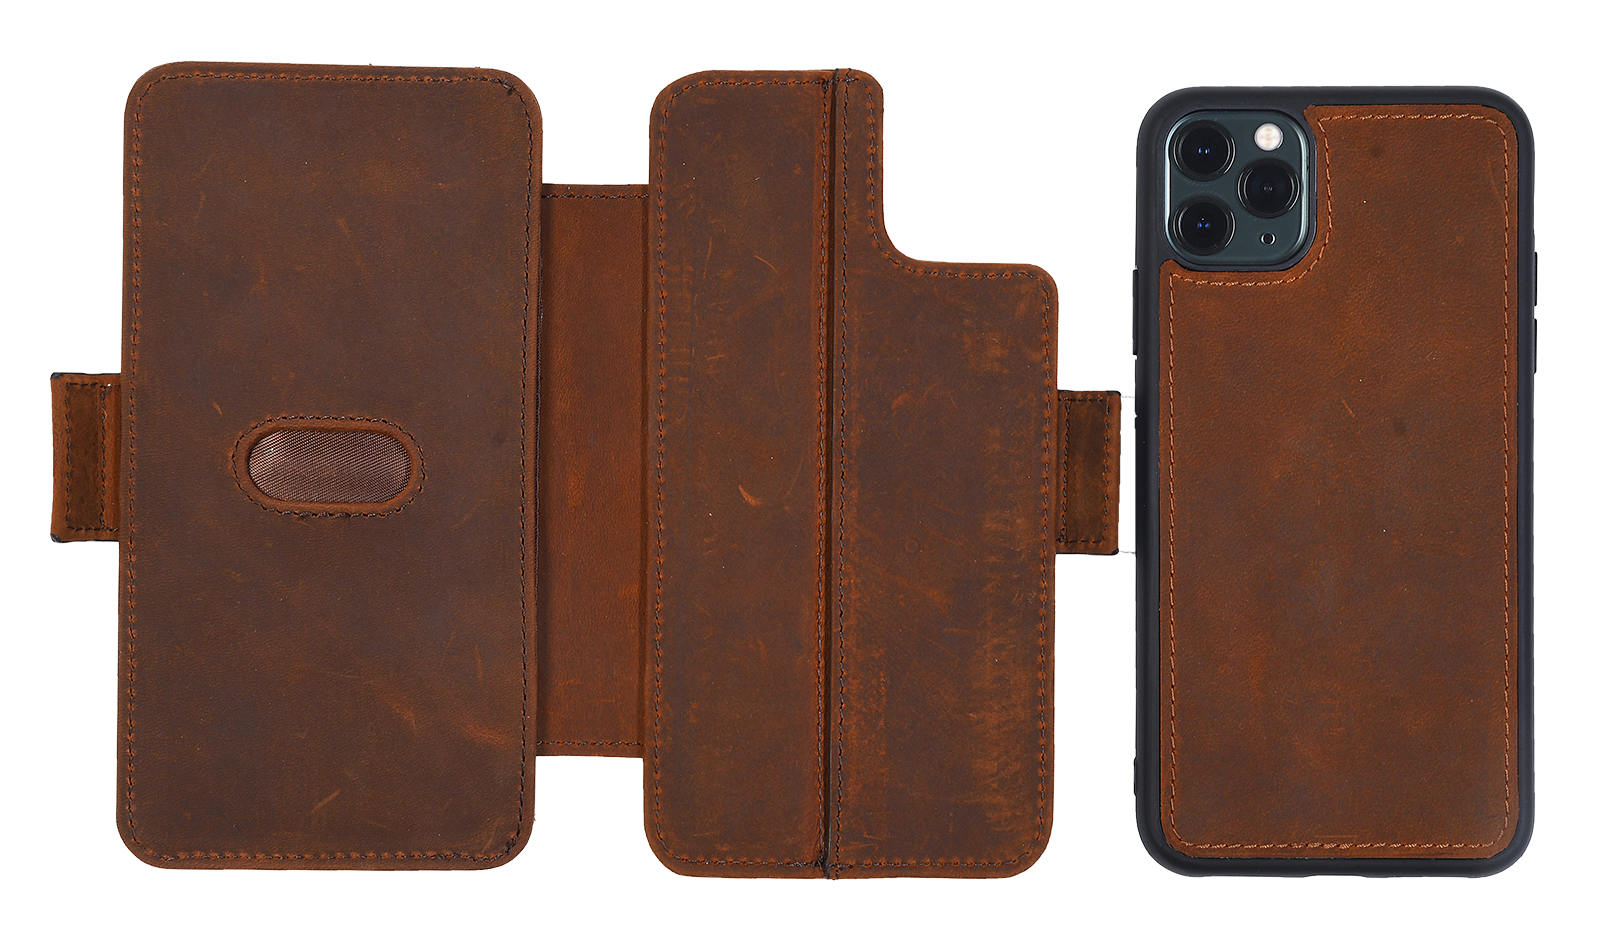 sport-brown iphone-11-pro iphone-11-pro-max